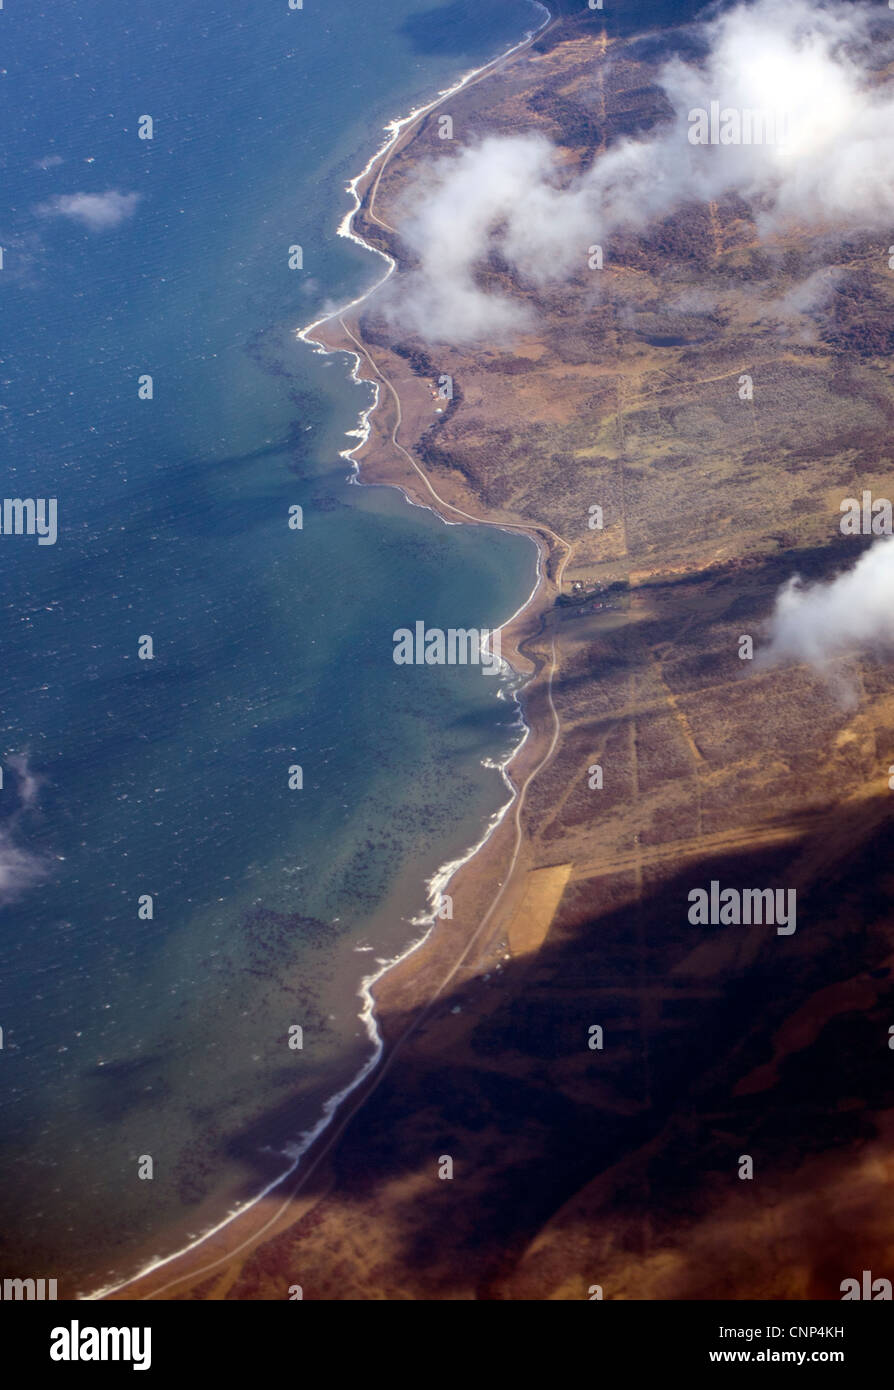 Aerial view of seacoast in south america resembling a human portrait outline - Stock Image